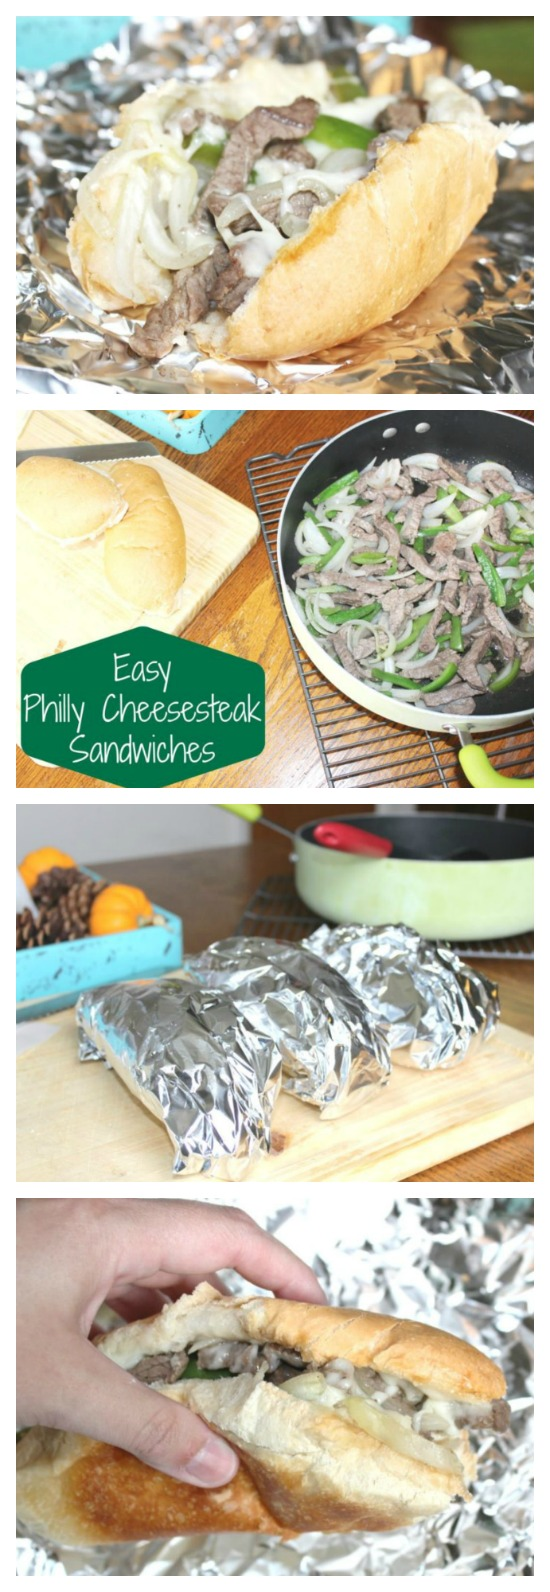 Easy Philly Cheesesteak Sandwiches Recipe to Whip Up on Busy Nights!